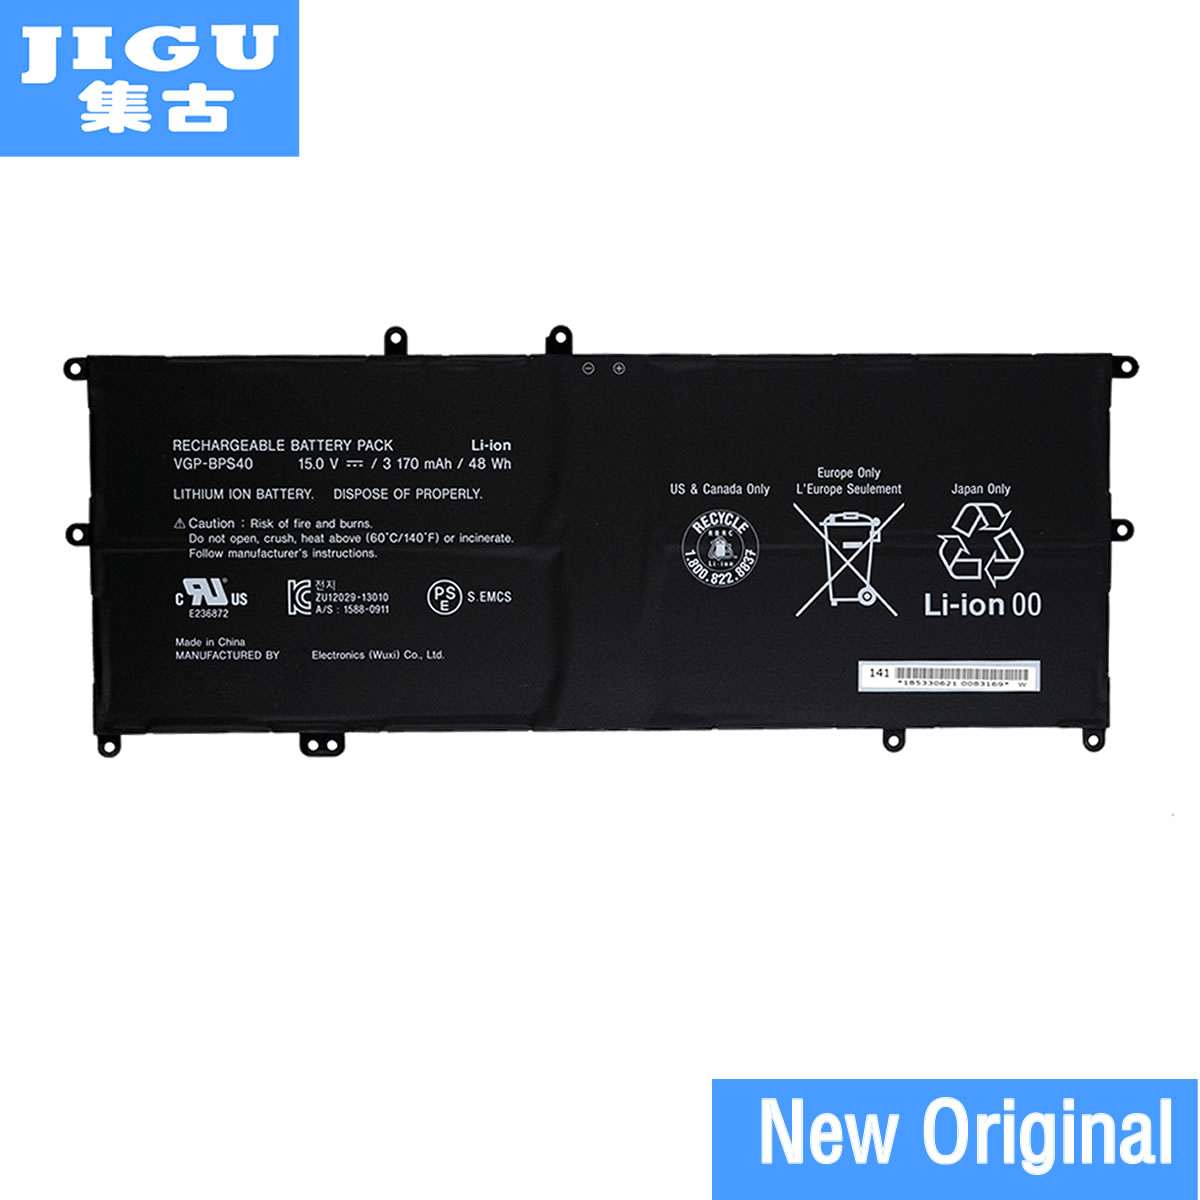 JIGU VGP-BPS40 Original Laptop Battery For SONY For VAIO Fit 14A 15A SVF14N SVF15N Series 15V 3170MAH brand new laptop parts for sony for viao svf14 svf14n svf15 svf15n series touchpad and ffc cable